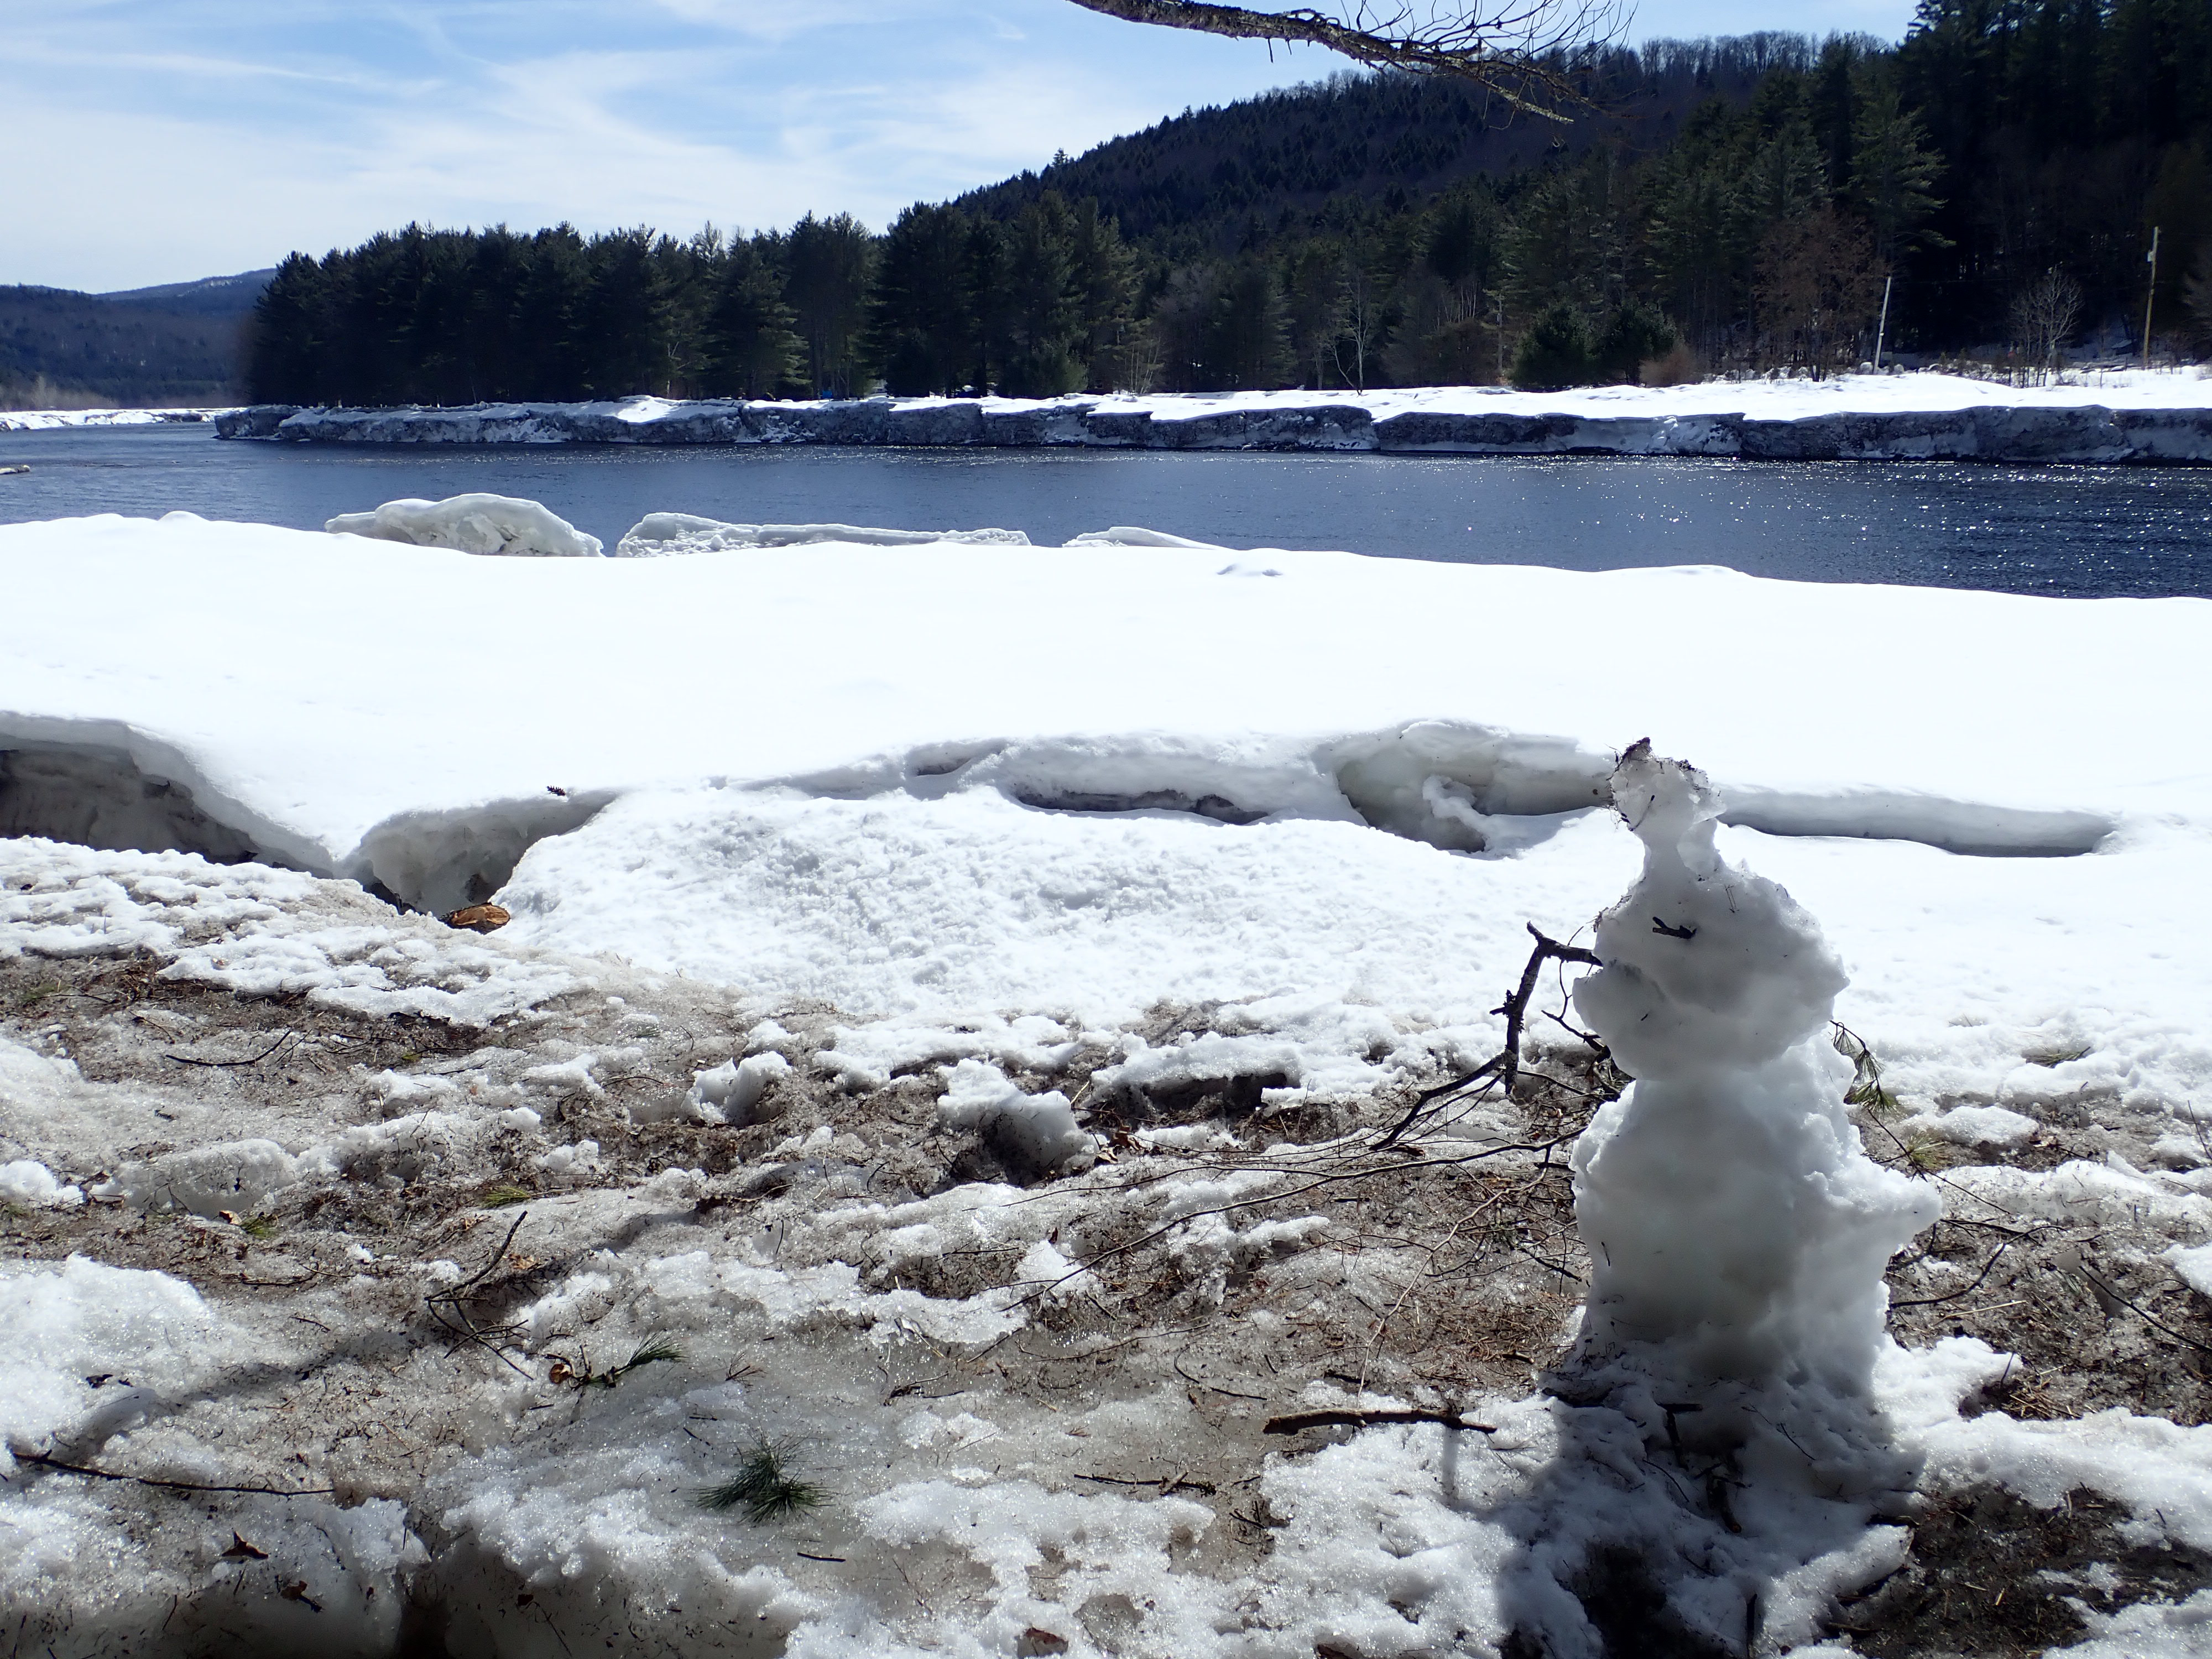 a melting snowman on the Warren County Nature Trails with the Hudson River in the background